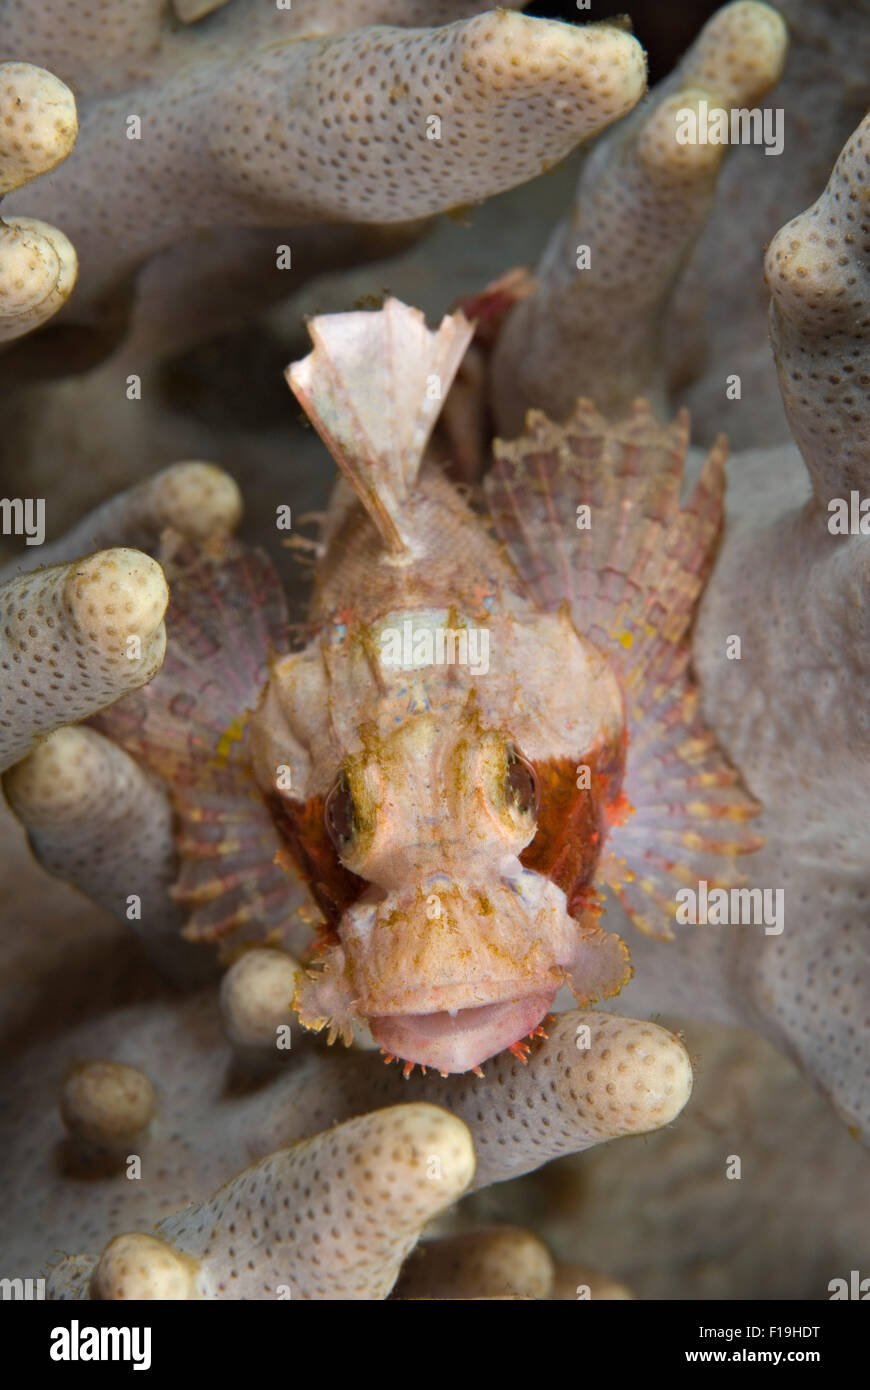 PX510218-D. Bearded Scorpionfish (Scorpaenopsis oxycephalus), juvenile resting in soft coral. Indonesia, tropical - Stock Image